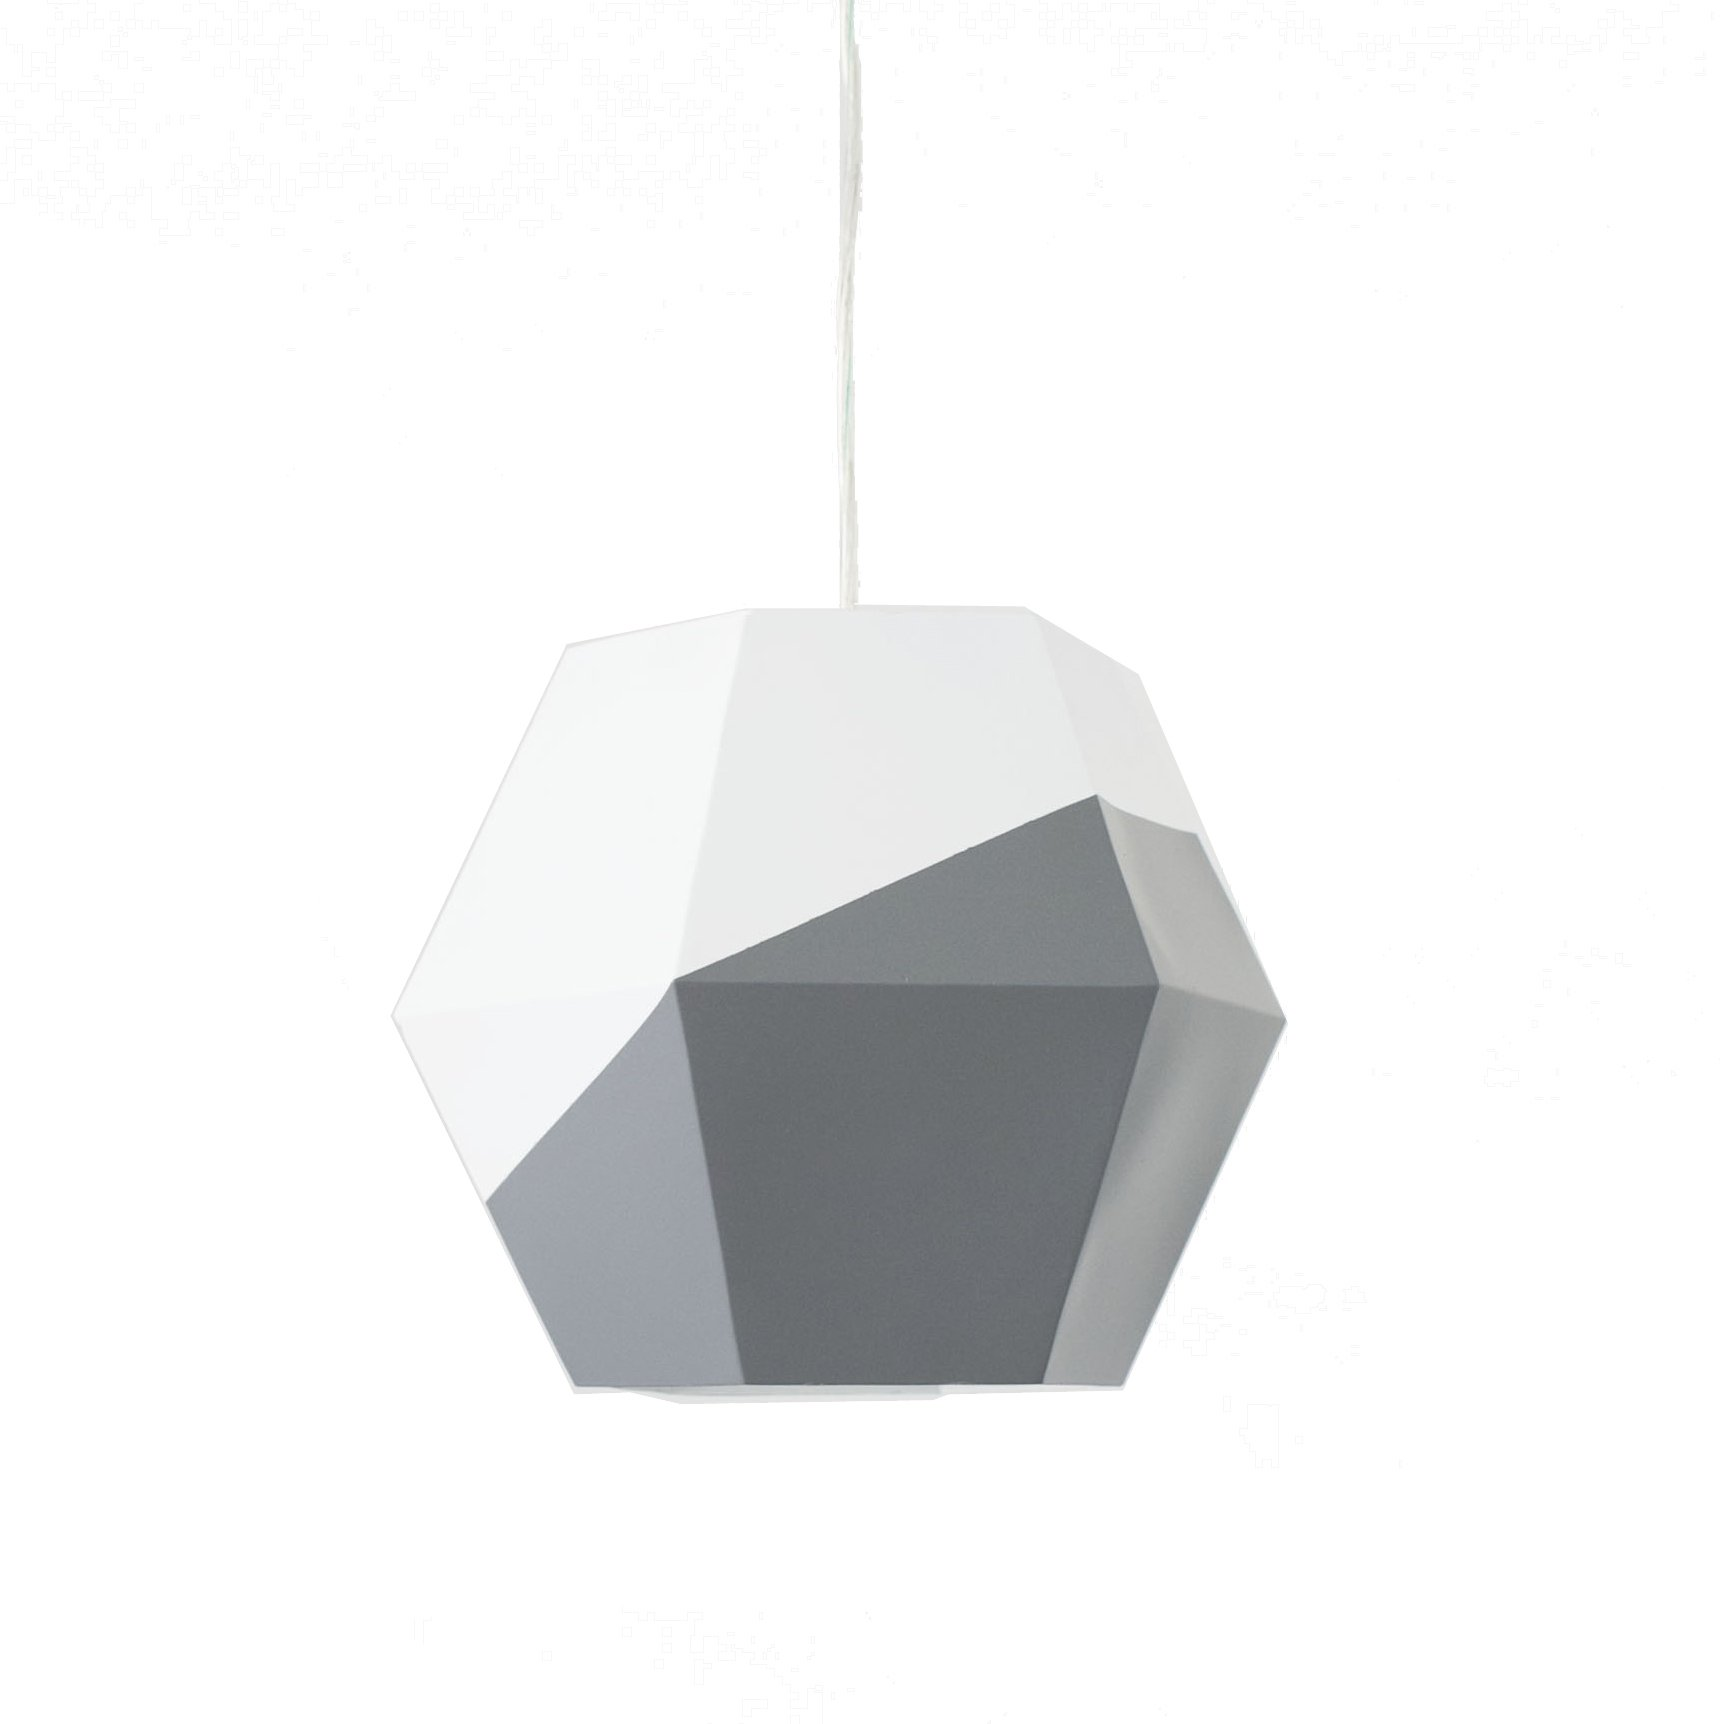 Petunia Pickle Bottom Southwest Skies Hanging Ceiling Pendant Light, Gray/White by Petunia Pickle Bottom